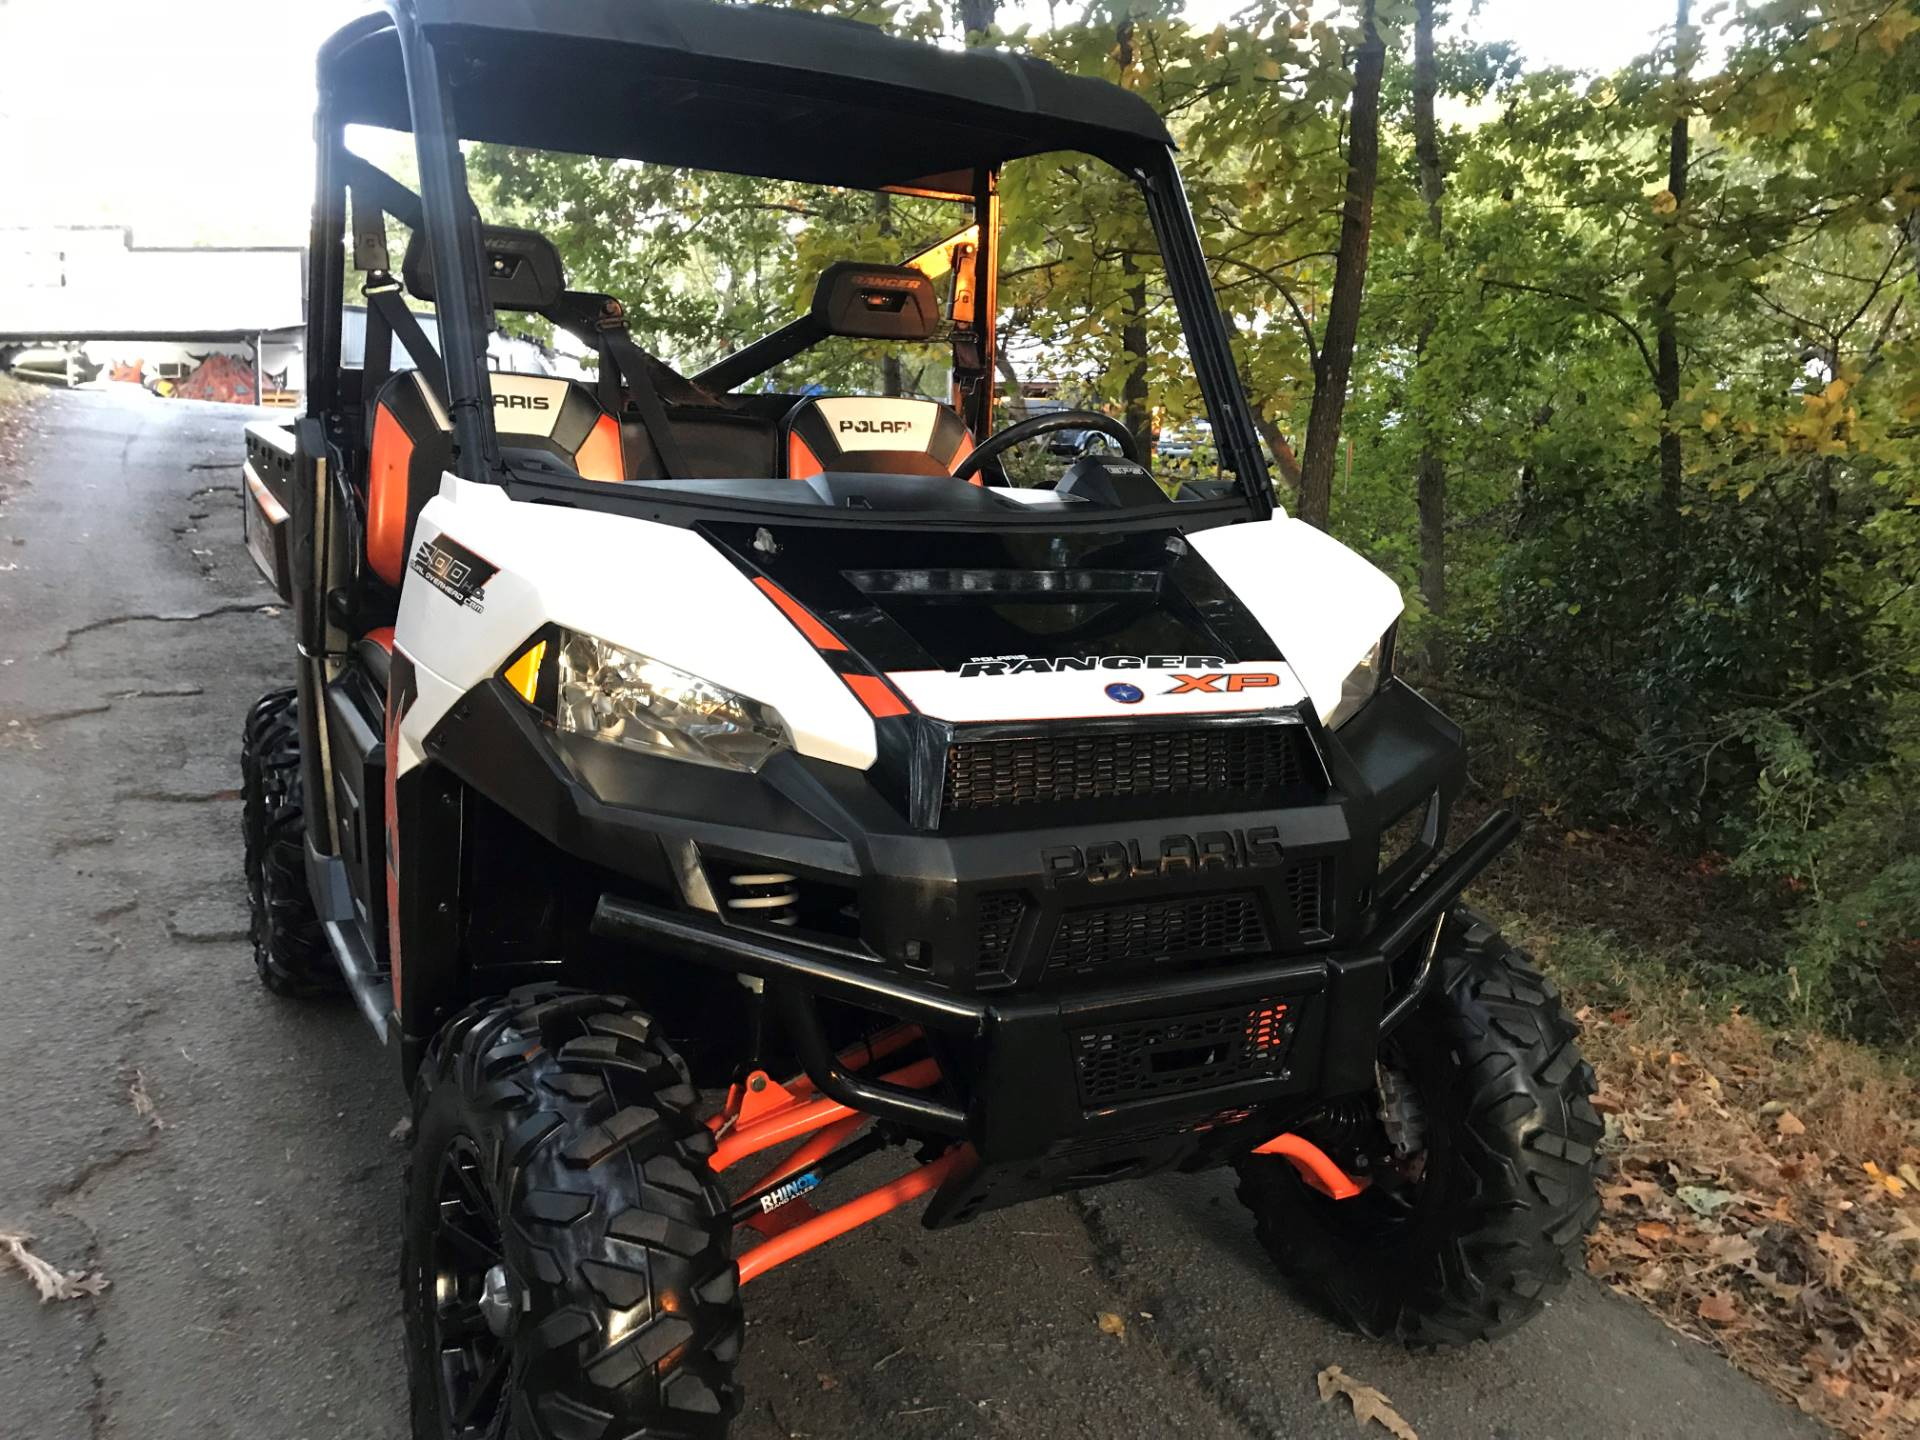 2015 POLARIS RANGER 900 XP EPS in Woodstock, Georgia - Photo 4